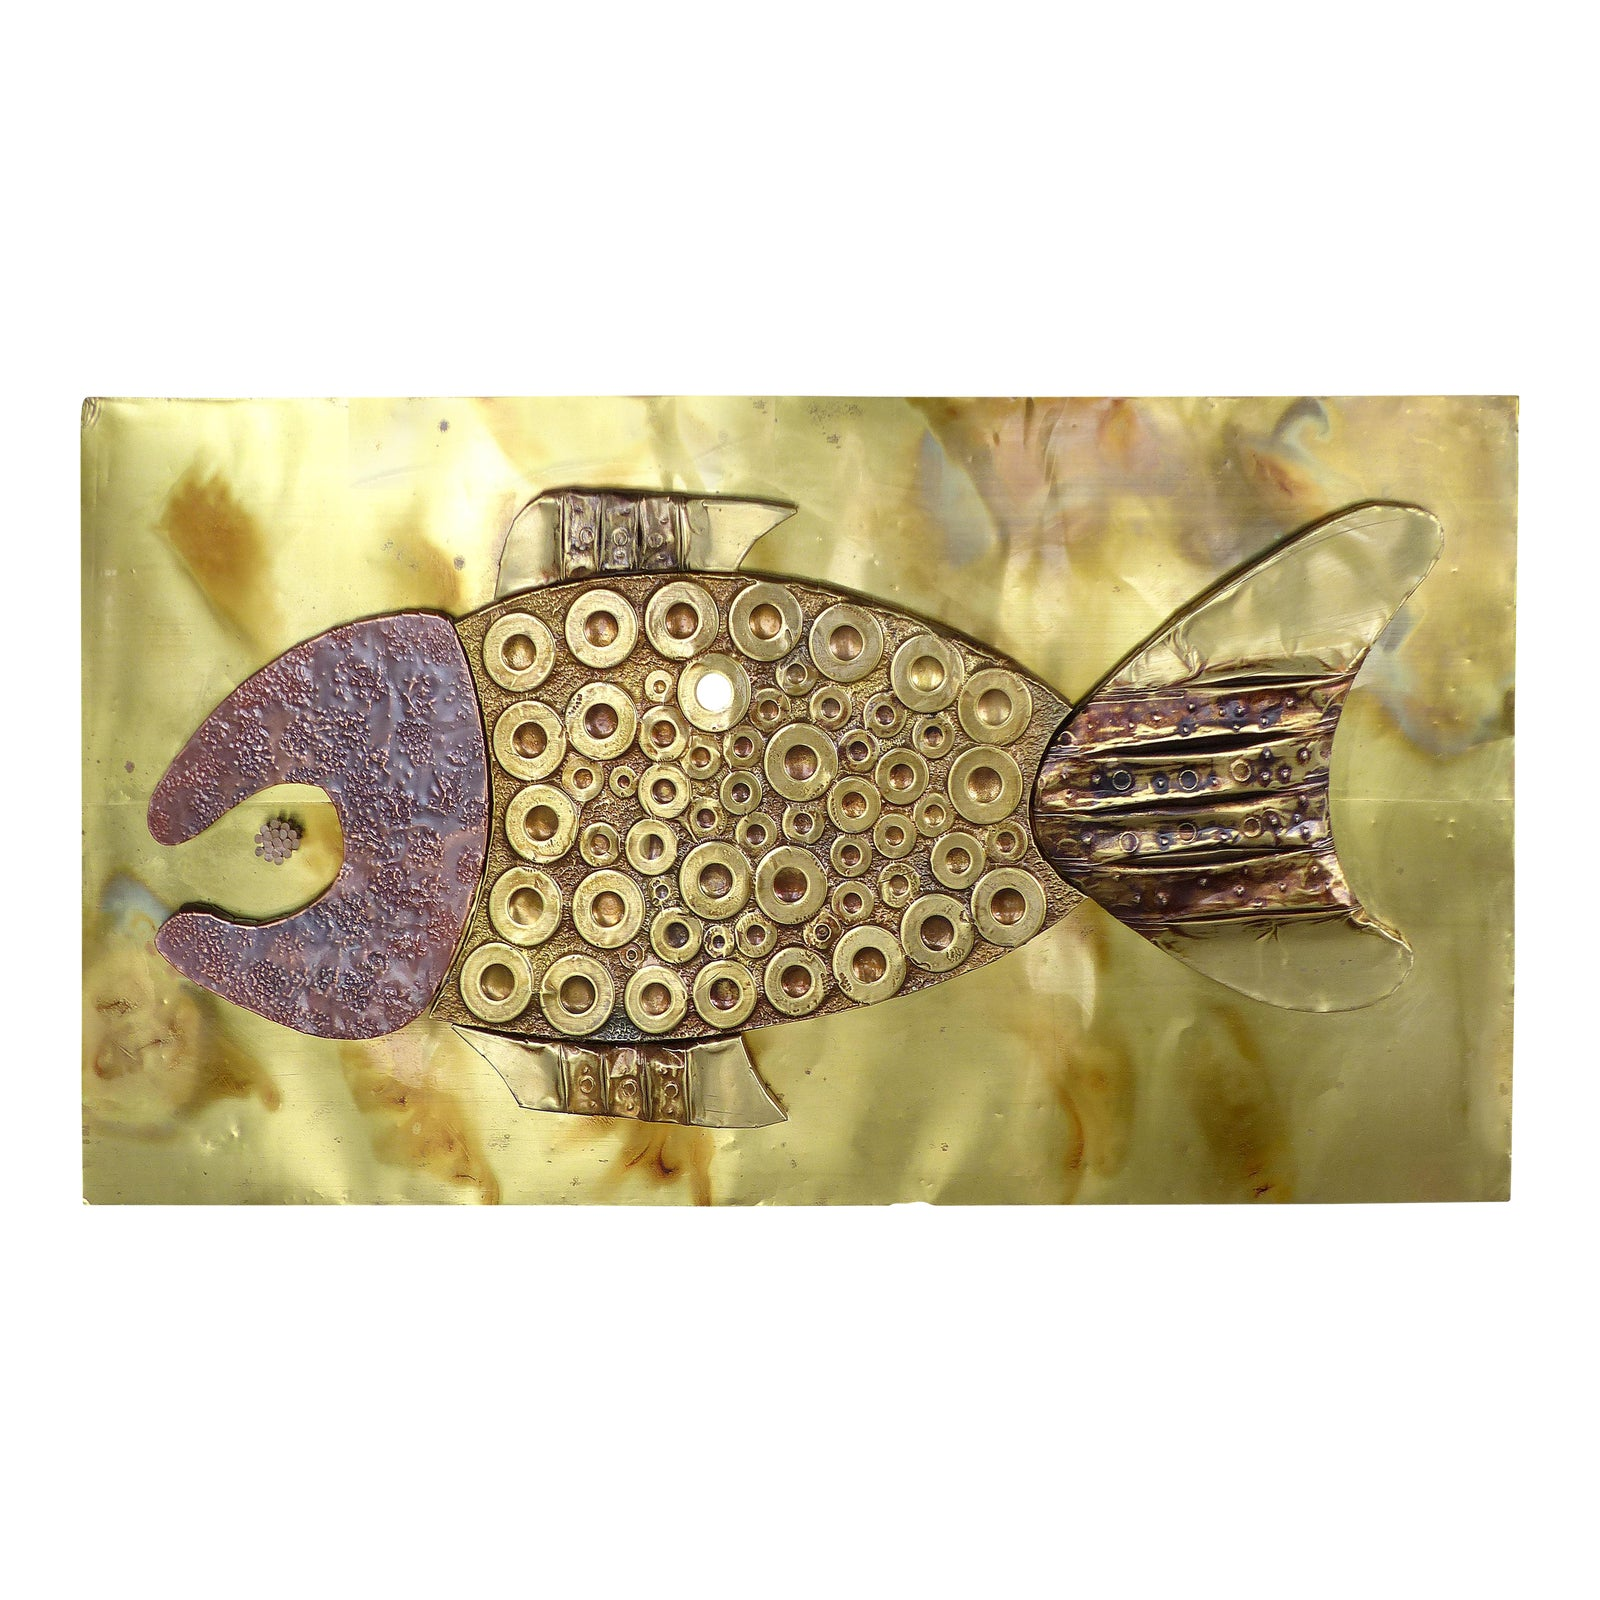 Awesome Copper Fish Wall Art Festooning - Art & Wall Decor ...